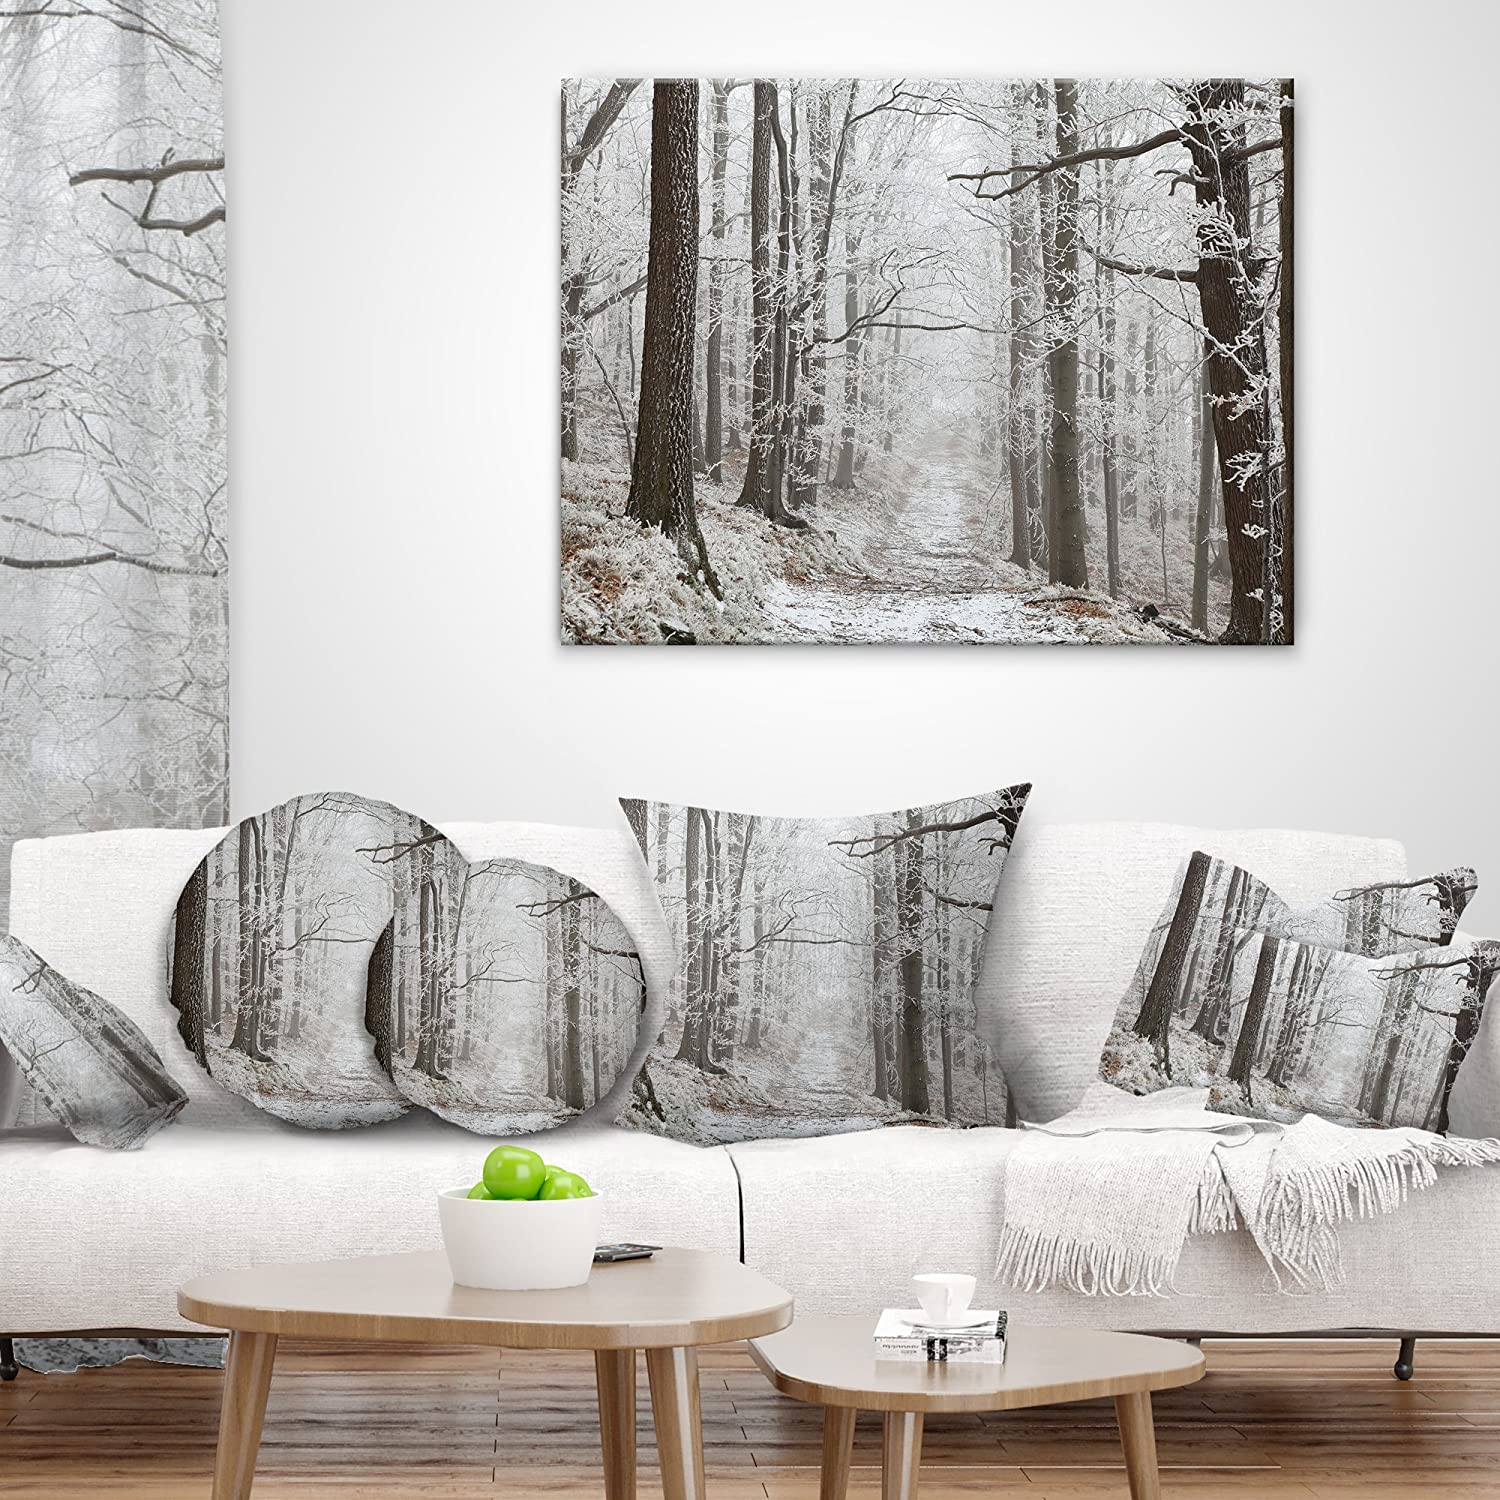 X 16 In Insert Printed On Both Side In Sofa Throw Pillow 16 In Designart Cu14832 16 16 Trail On Winter Morning Forest Cushion Cover For Living Room Throw Pillow Covers Home Kitchen